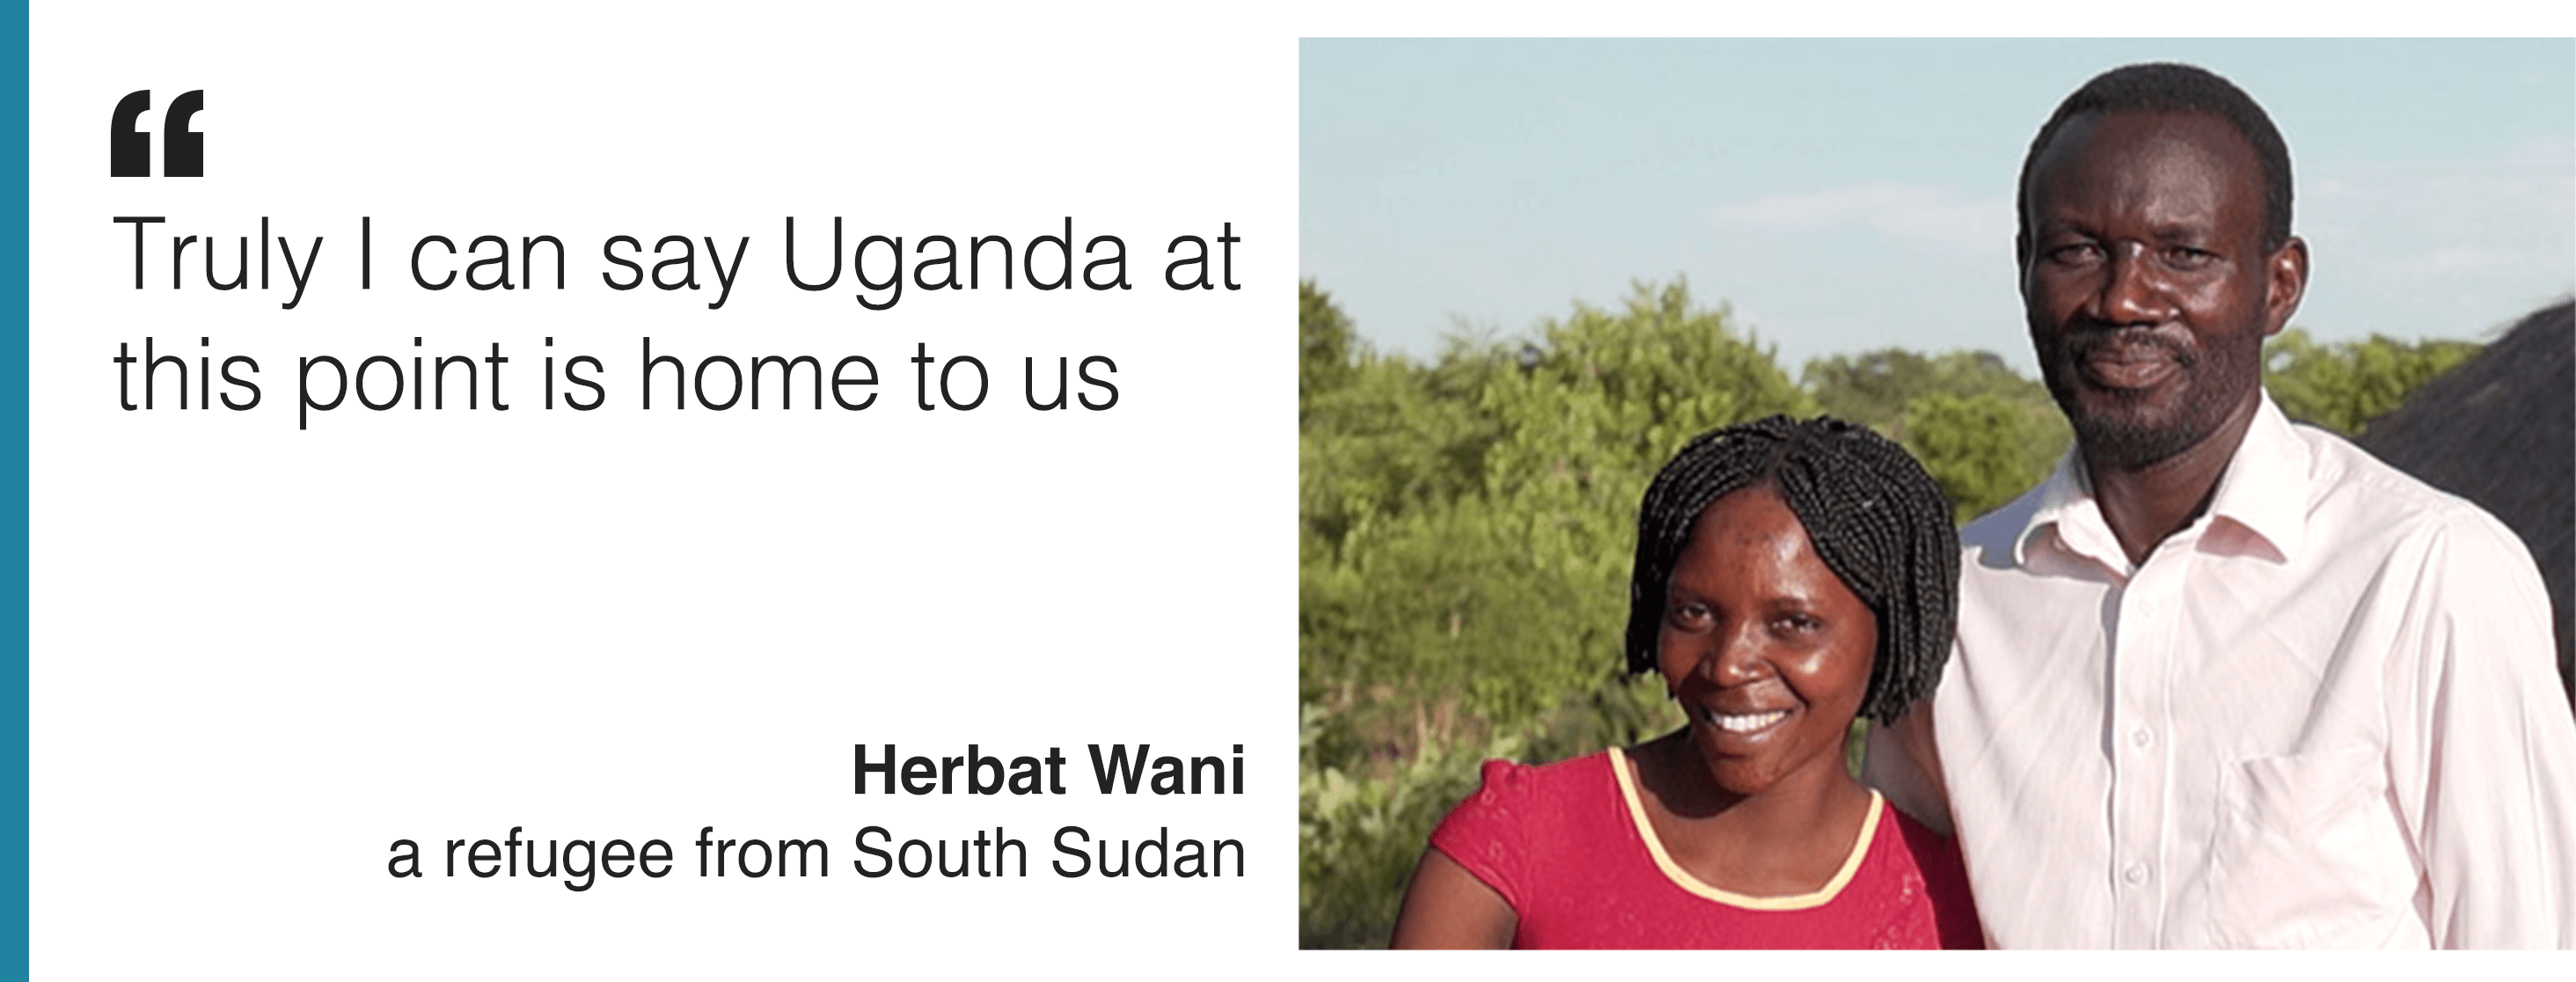 """Image and quote from Herbat Wani, who says: """"Truly I can say Uganda at this point is home to us."""""""